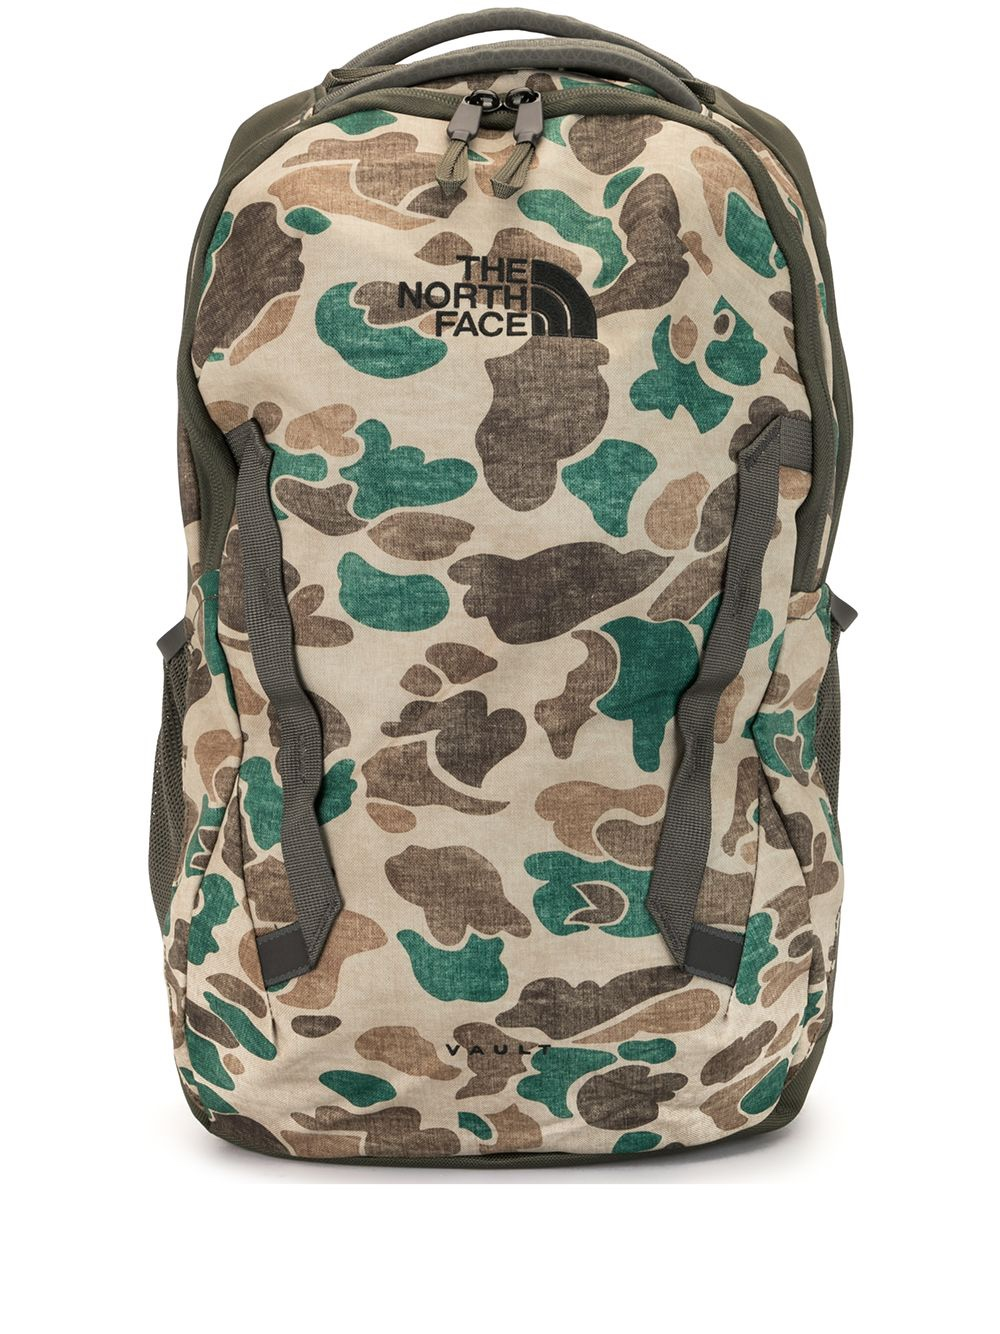 The North Face Backpack camo